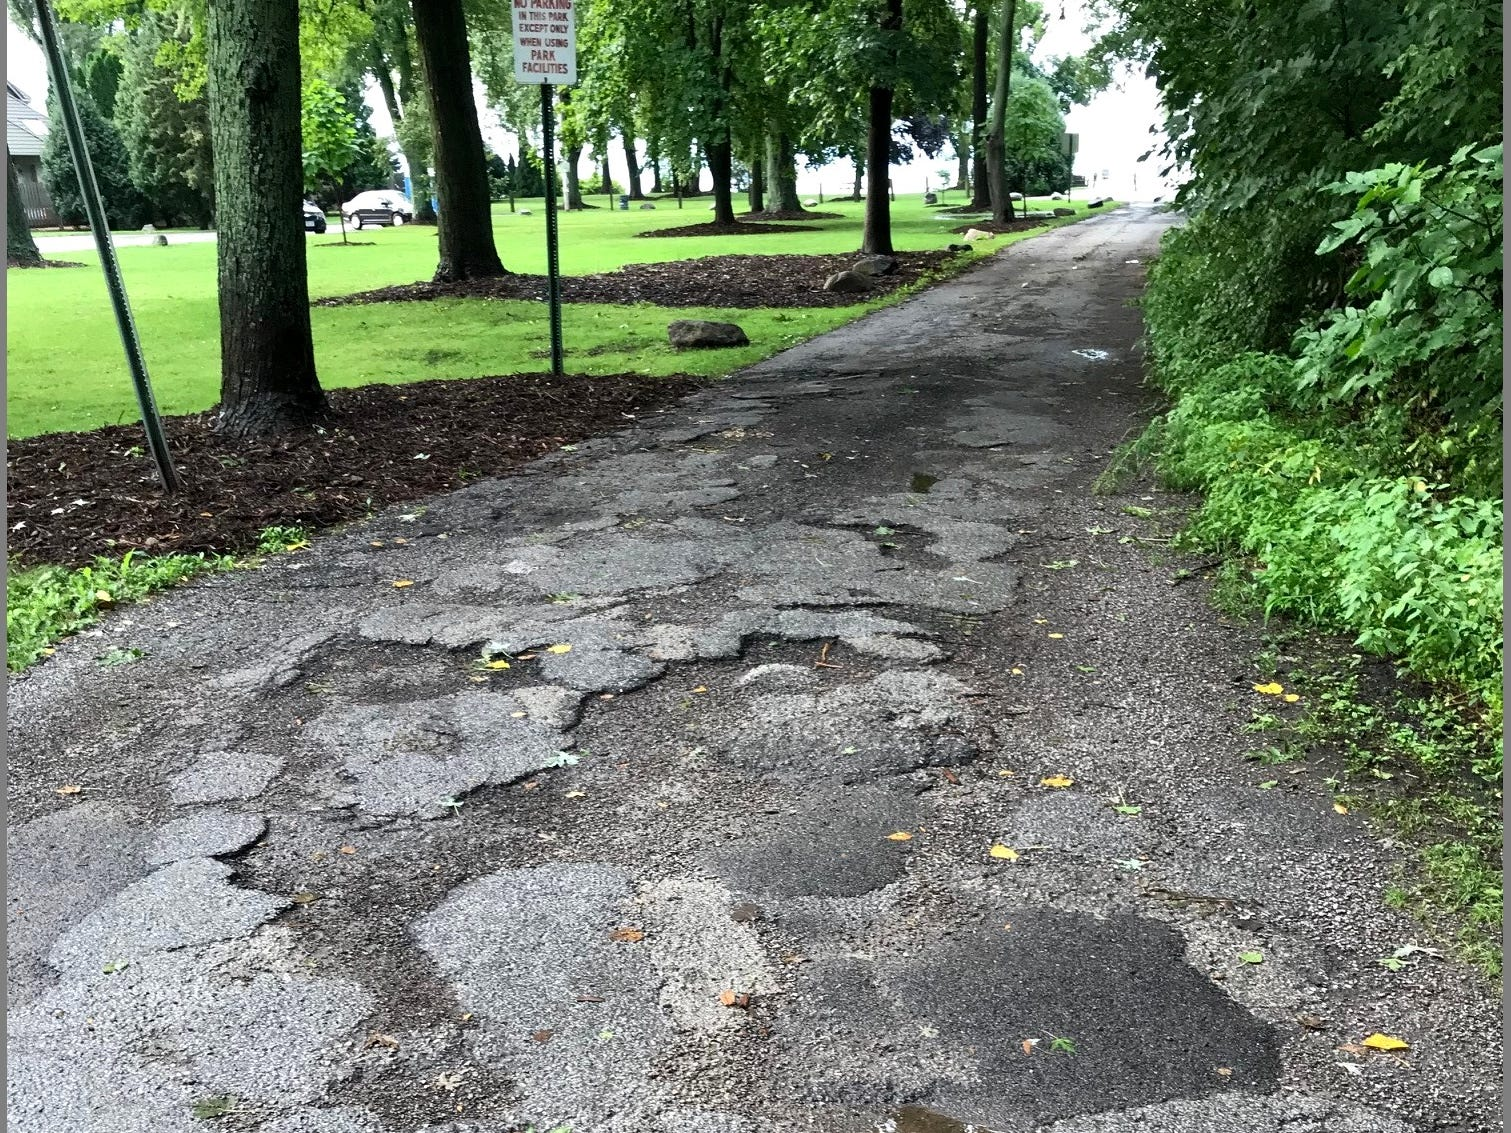 Improvements to Fresh Air Park in Neenah will come, but not until 2021